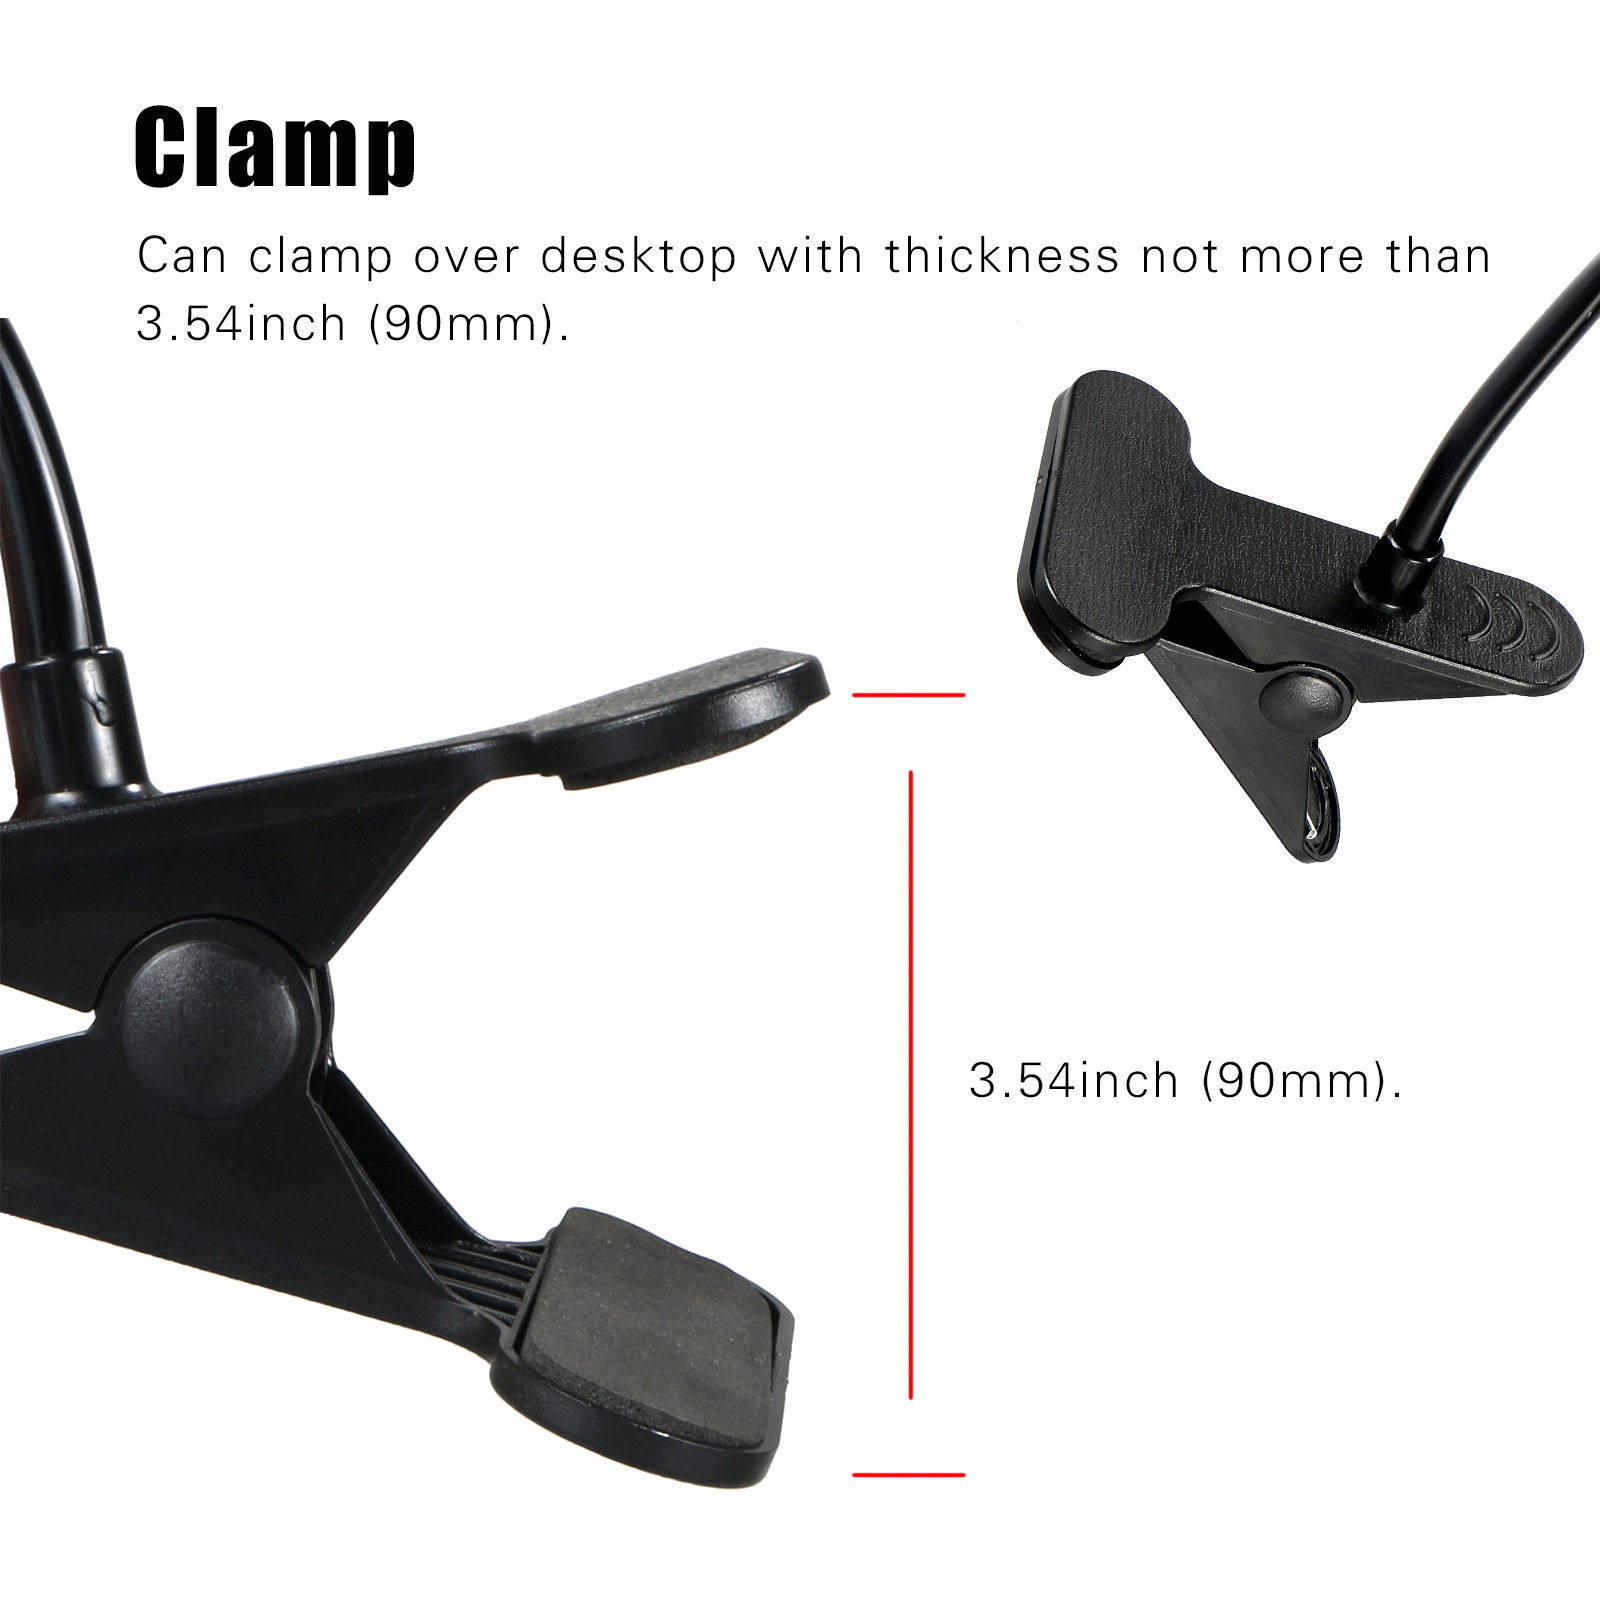 Ipad Stands For Bed Universal Flexible Arm Desktop Bed Lazy Holder Mount Stand